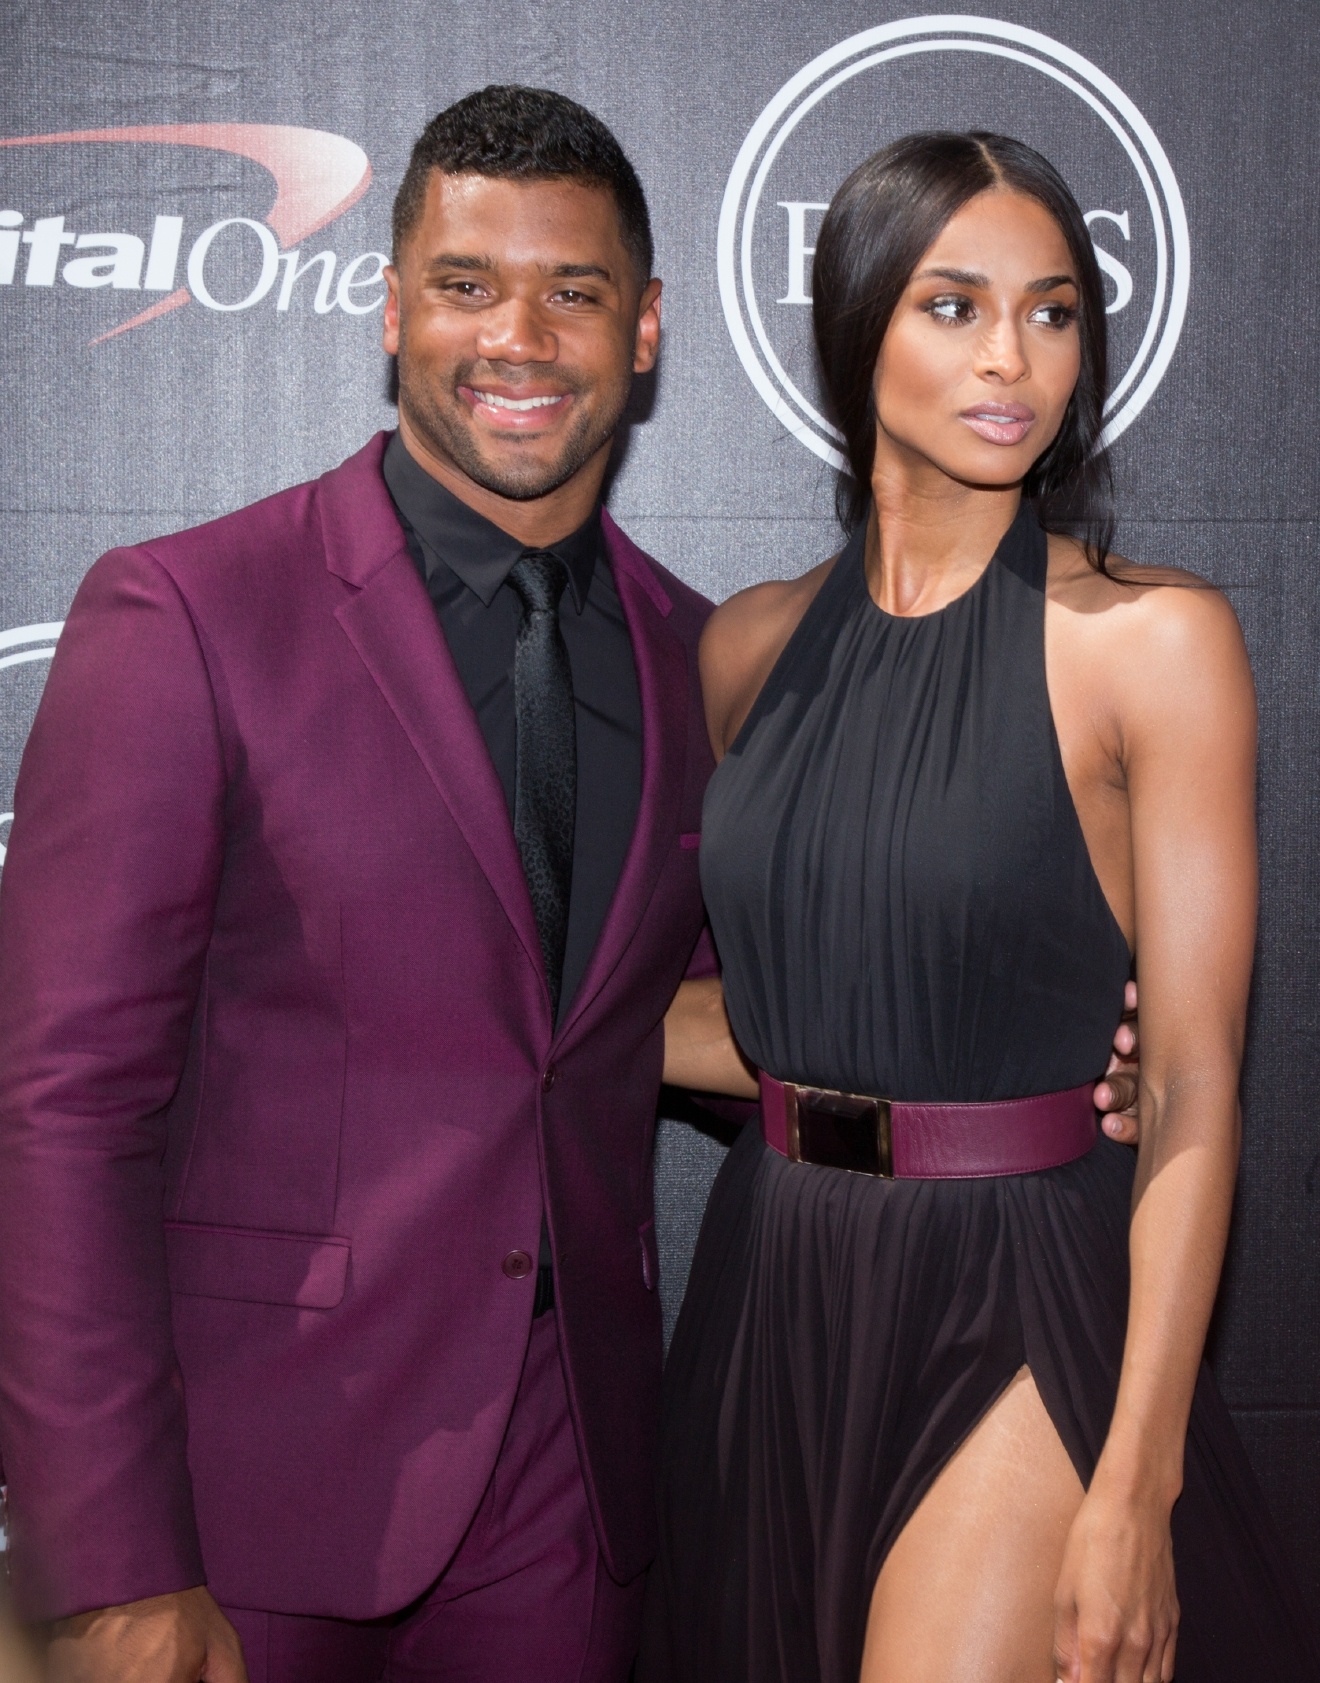 ESPYS 2015 red carpet - Arrivals                                    Featuring: Russell Wilson, ciara                  Where: Hollywood, California, United States                  When: 16 Jul 2015                  Credit: La Niece/WENN.com